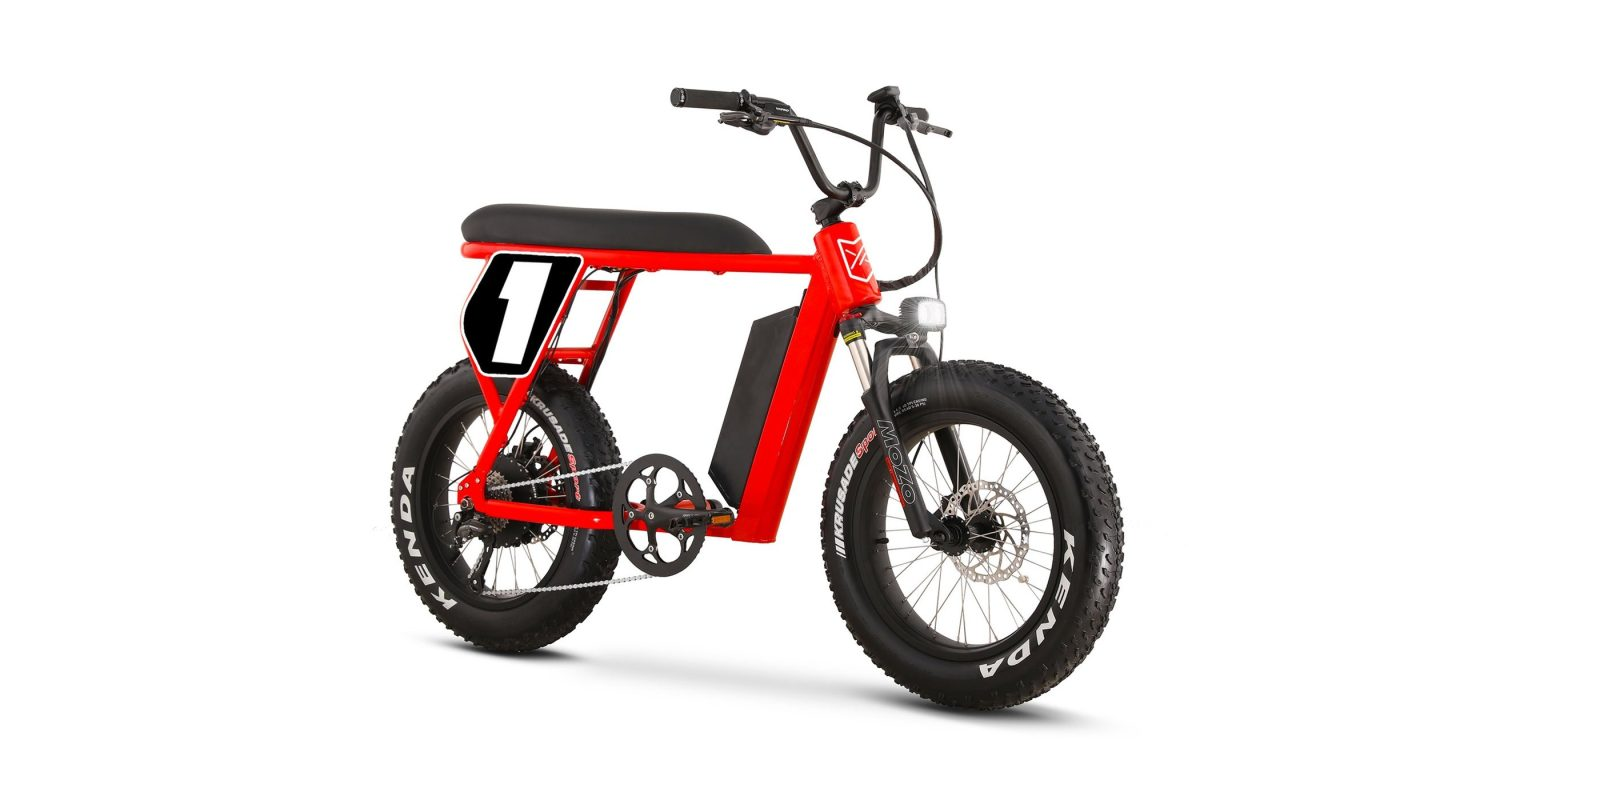 4df76e04d84 Juiced Bikes' new retro electric bicycle goes faster and farther for less  money